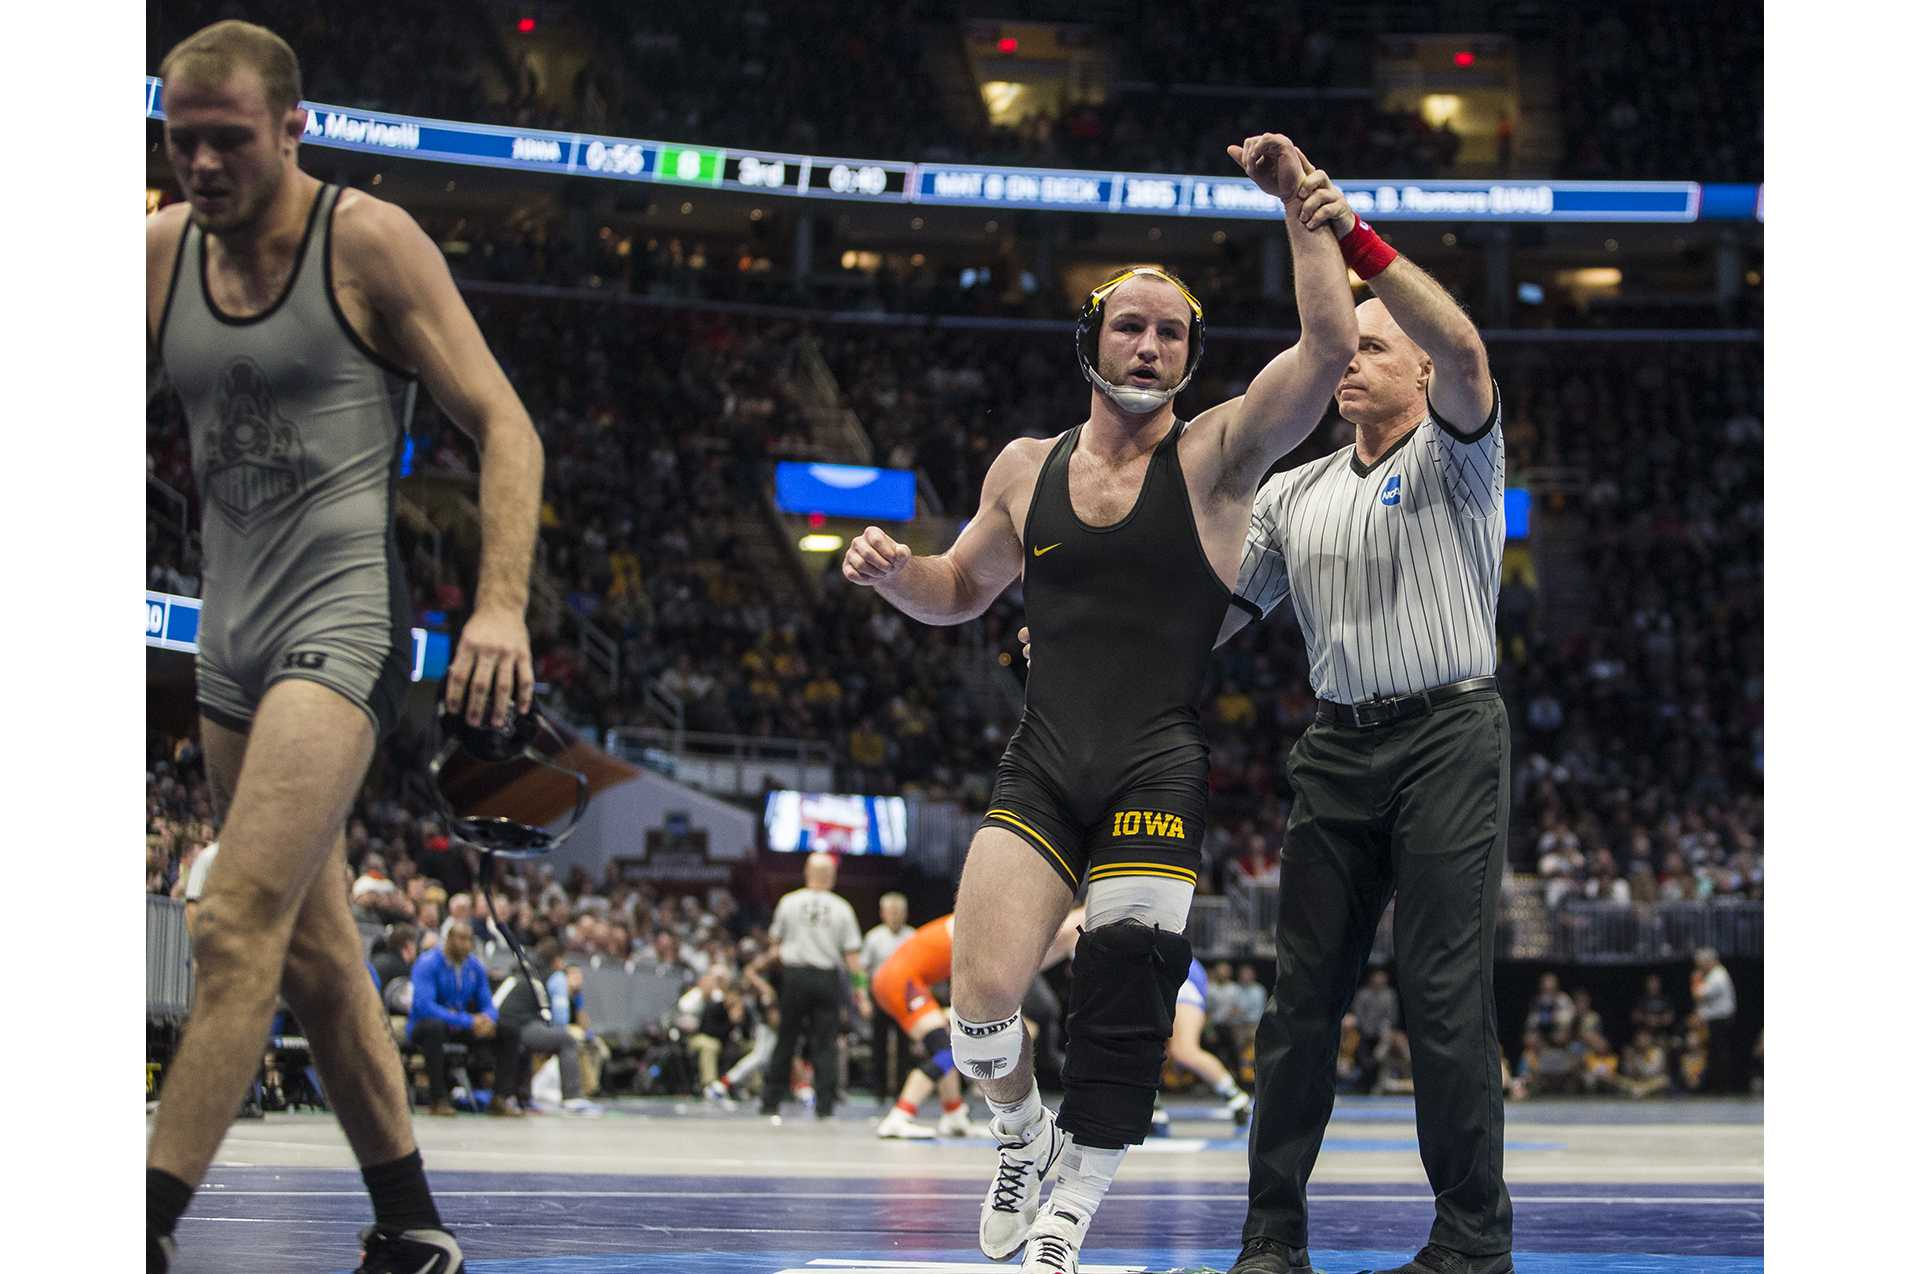 Photos: NCAA Wrestling Championships Session 1 – The Daily Iowan